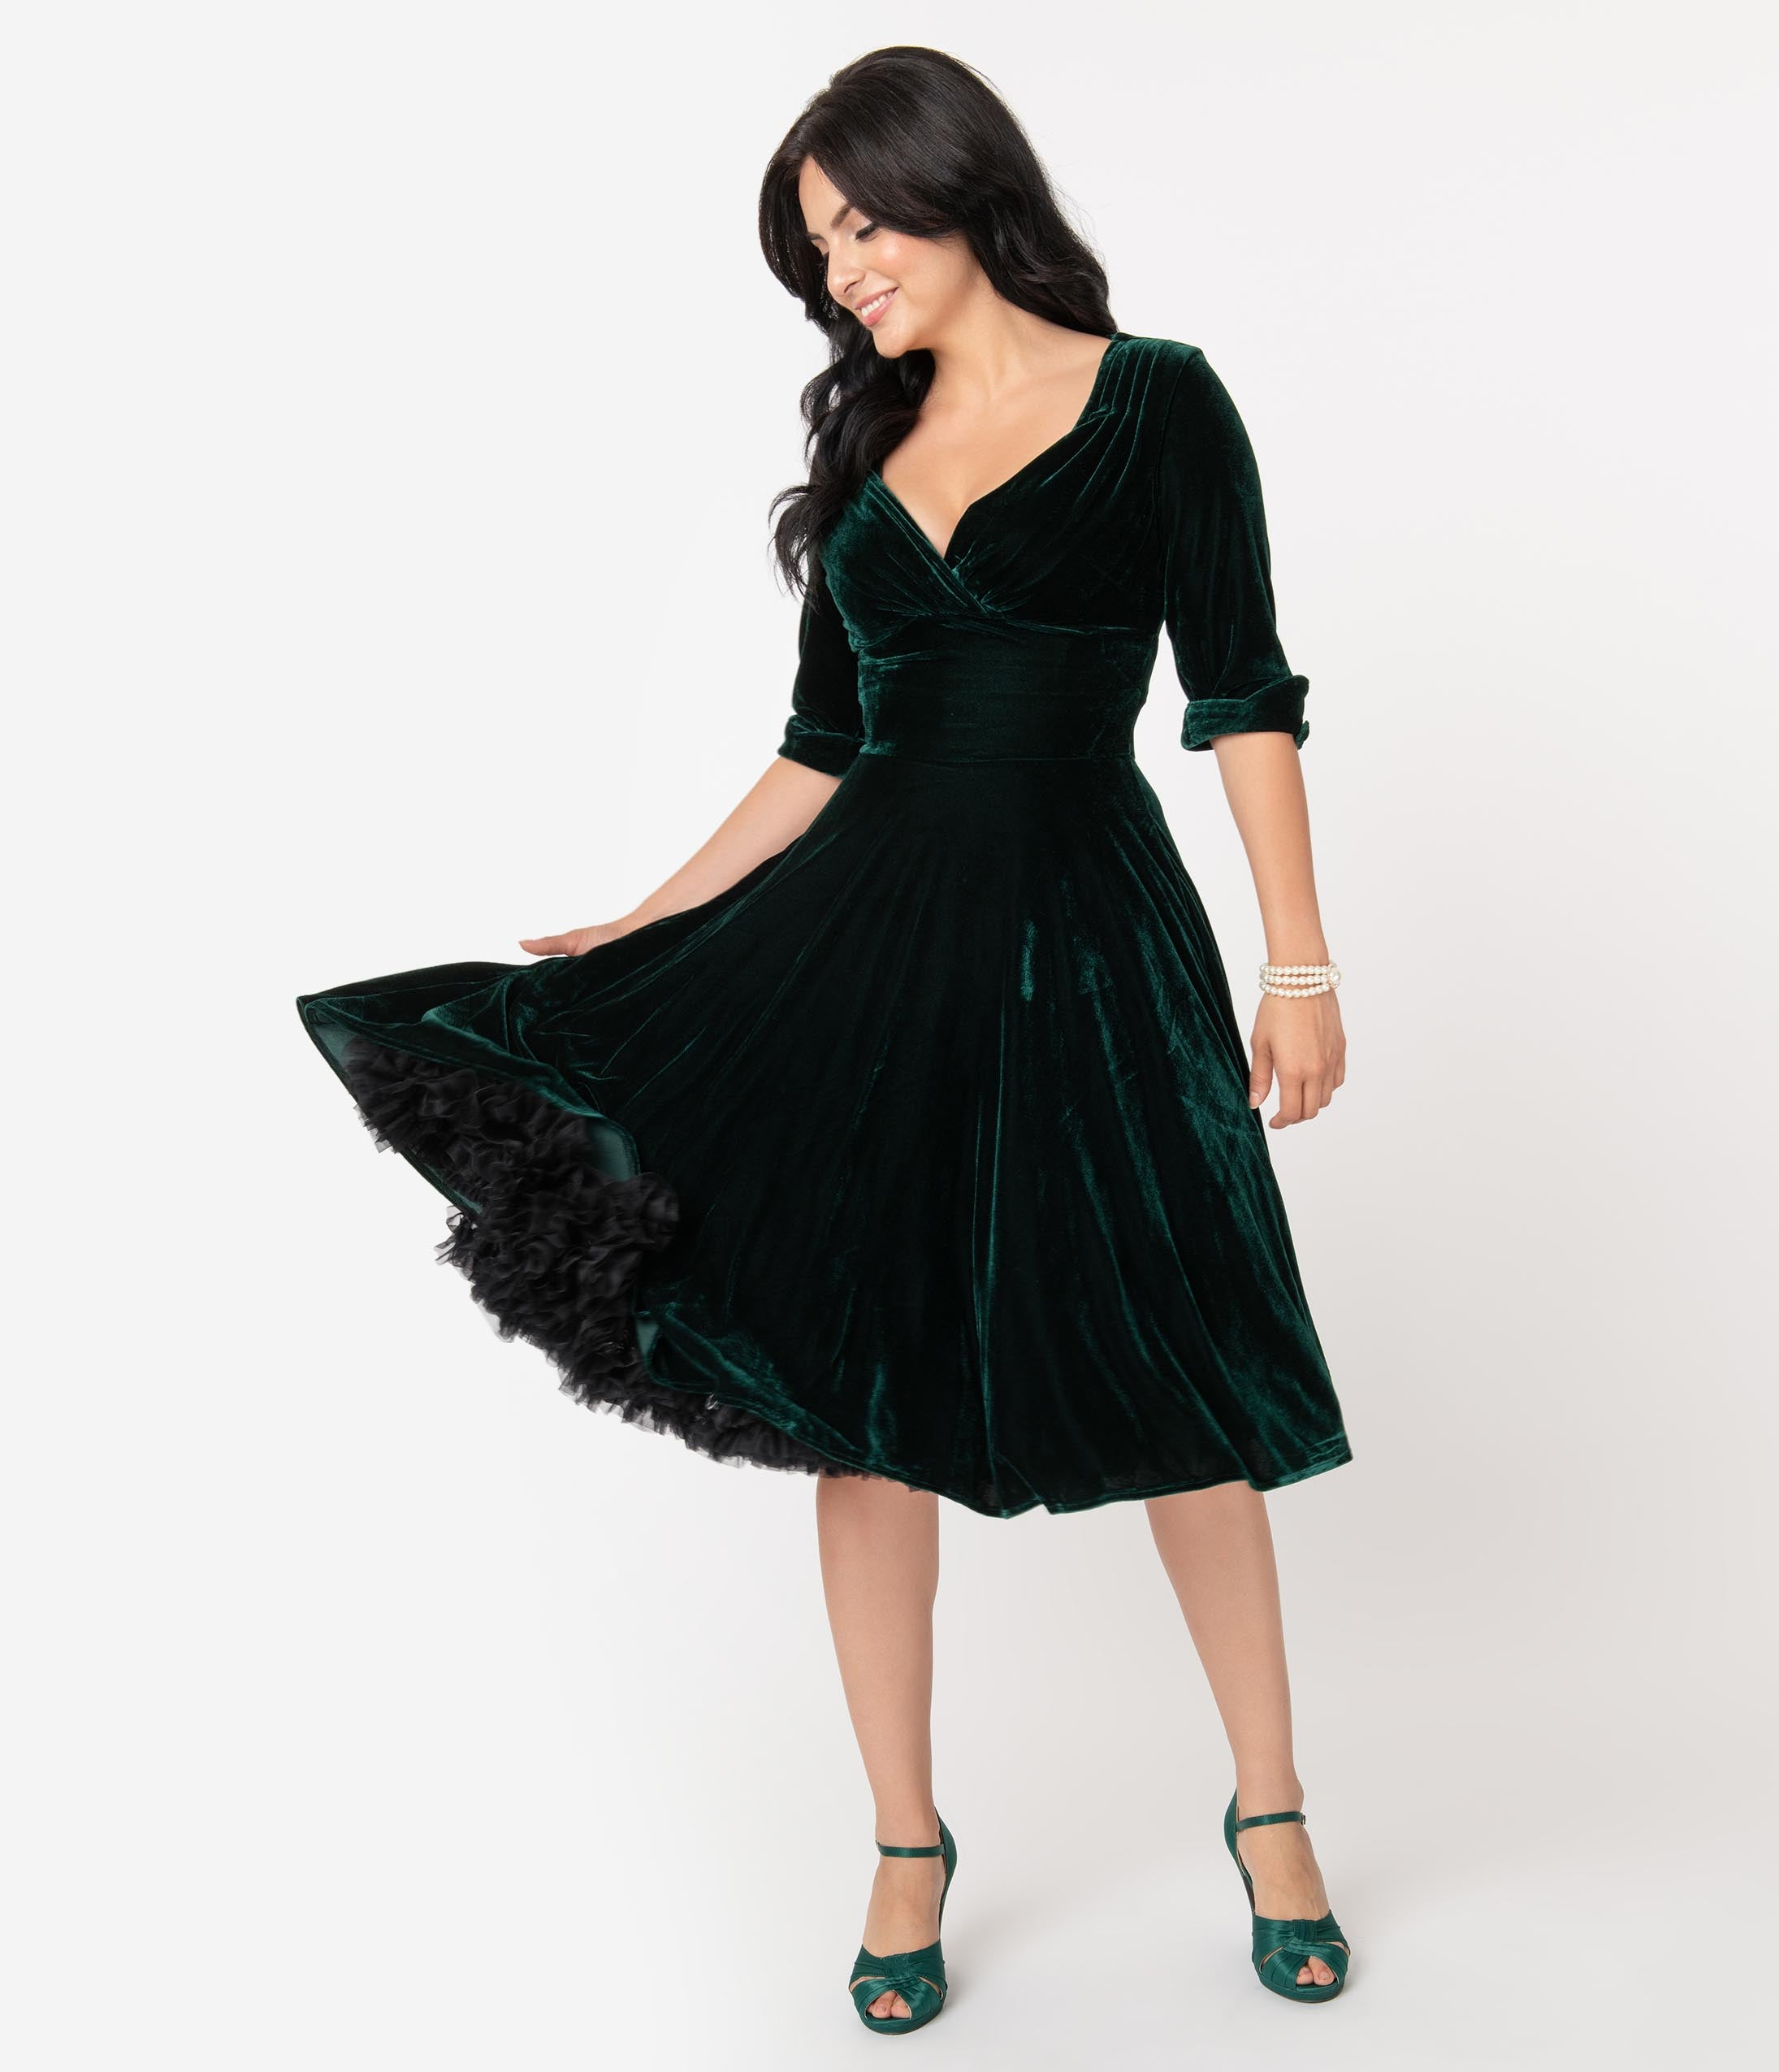 Vintage Christmas Gift Ideas for Women Unique Vintage 1950S Emerald Green Velvet Delores Swing Dress With Sleeves $98.00 AT vintagedancer.com